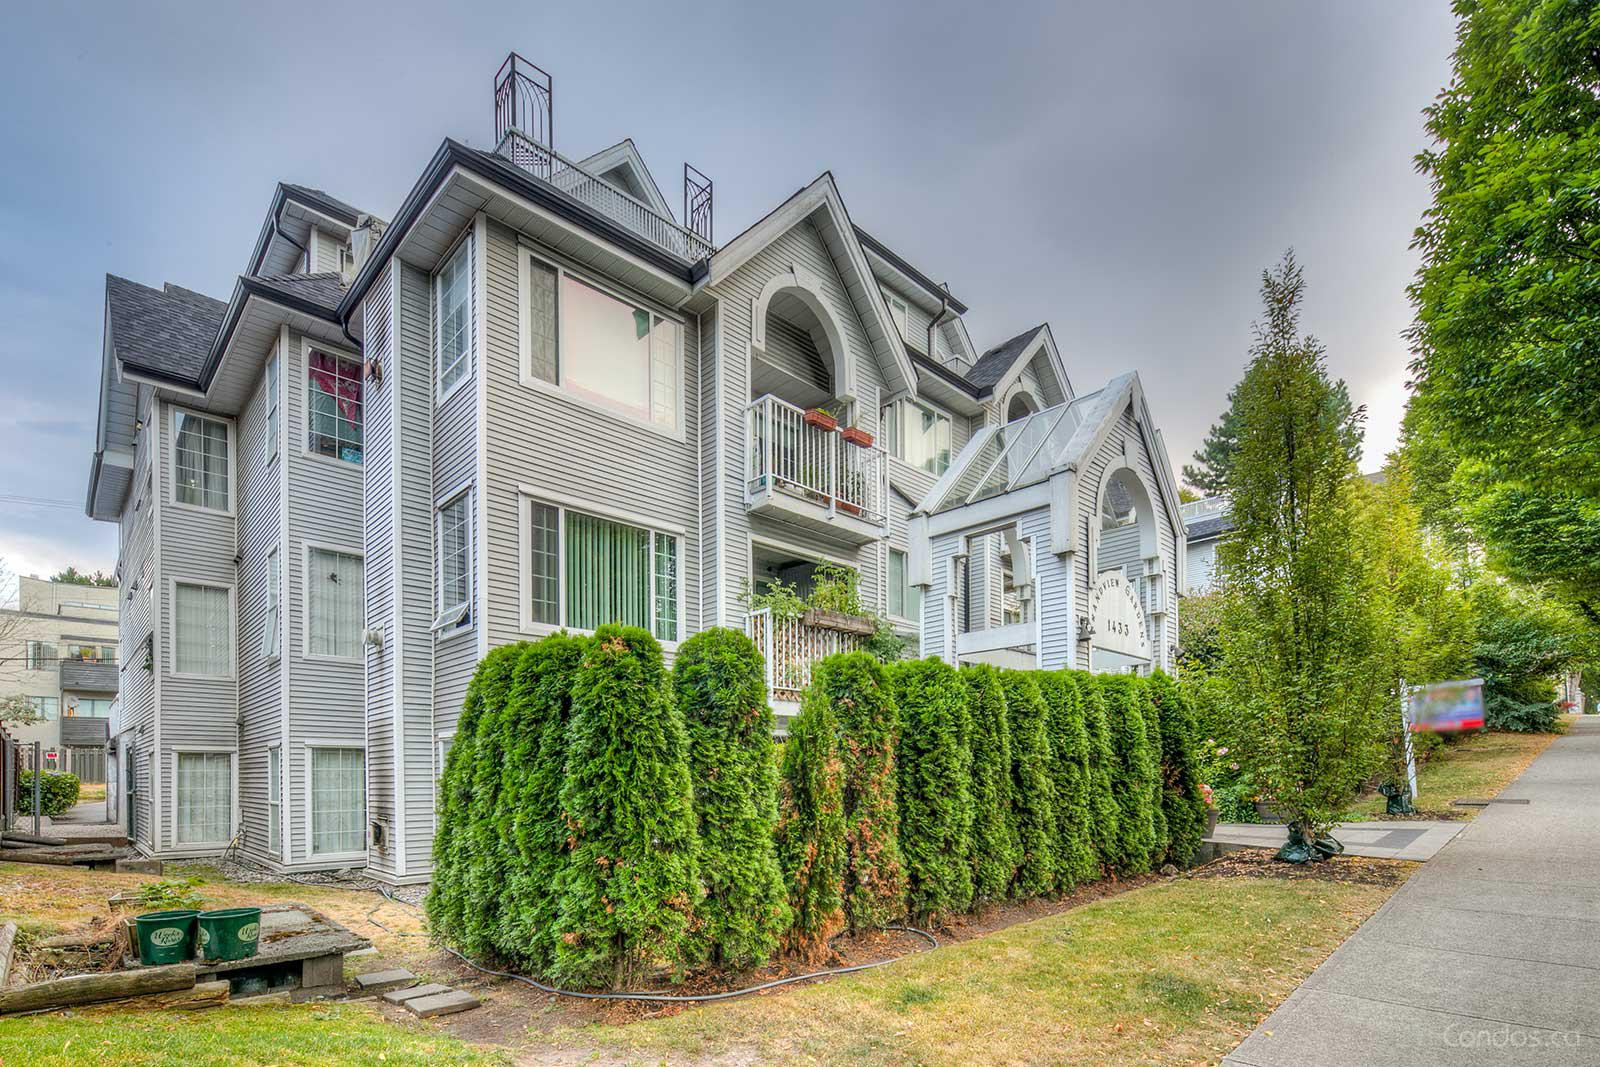 Grandview Gardens at 1433 E 1st Ave, Vancouver 1